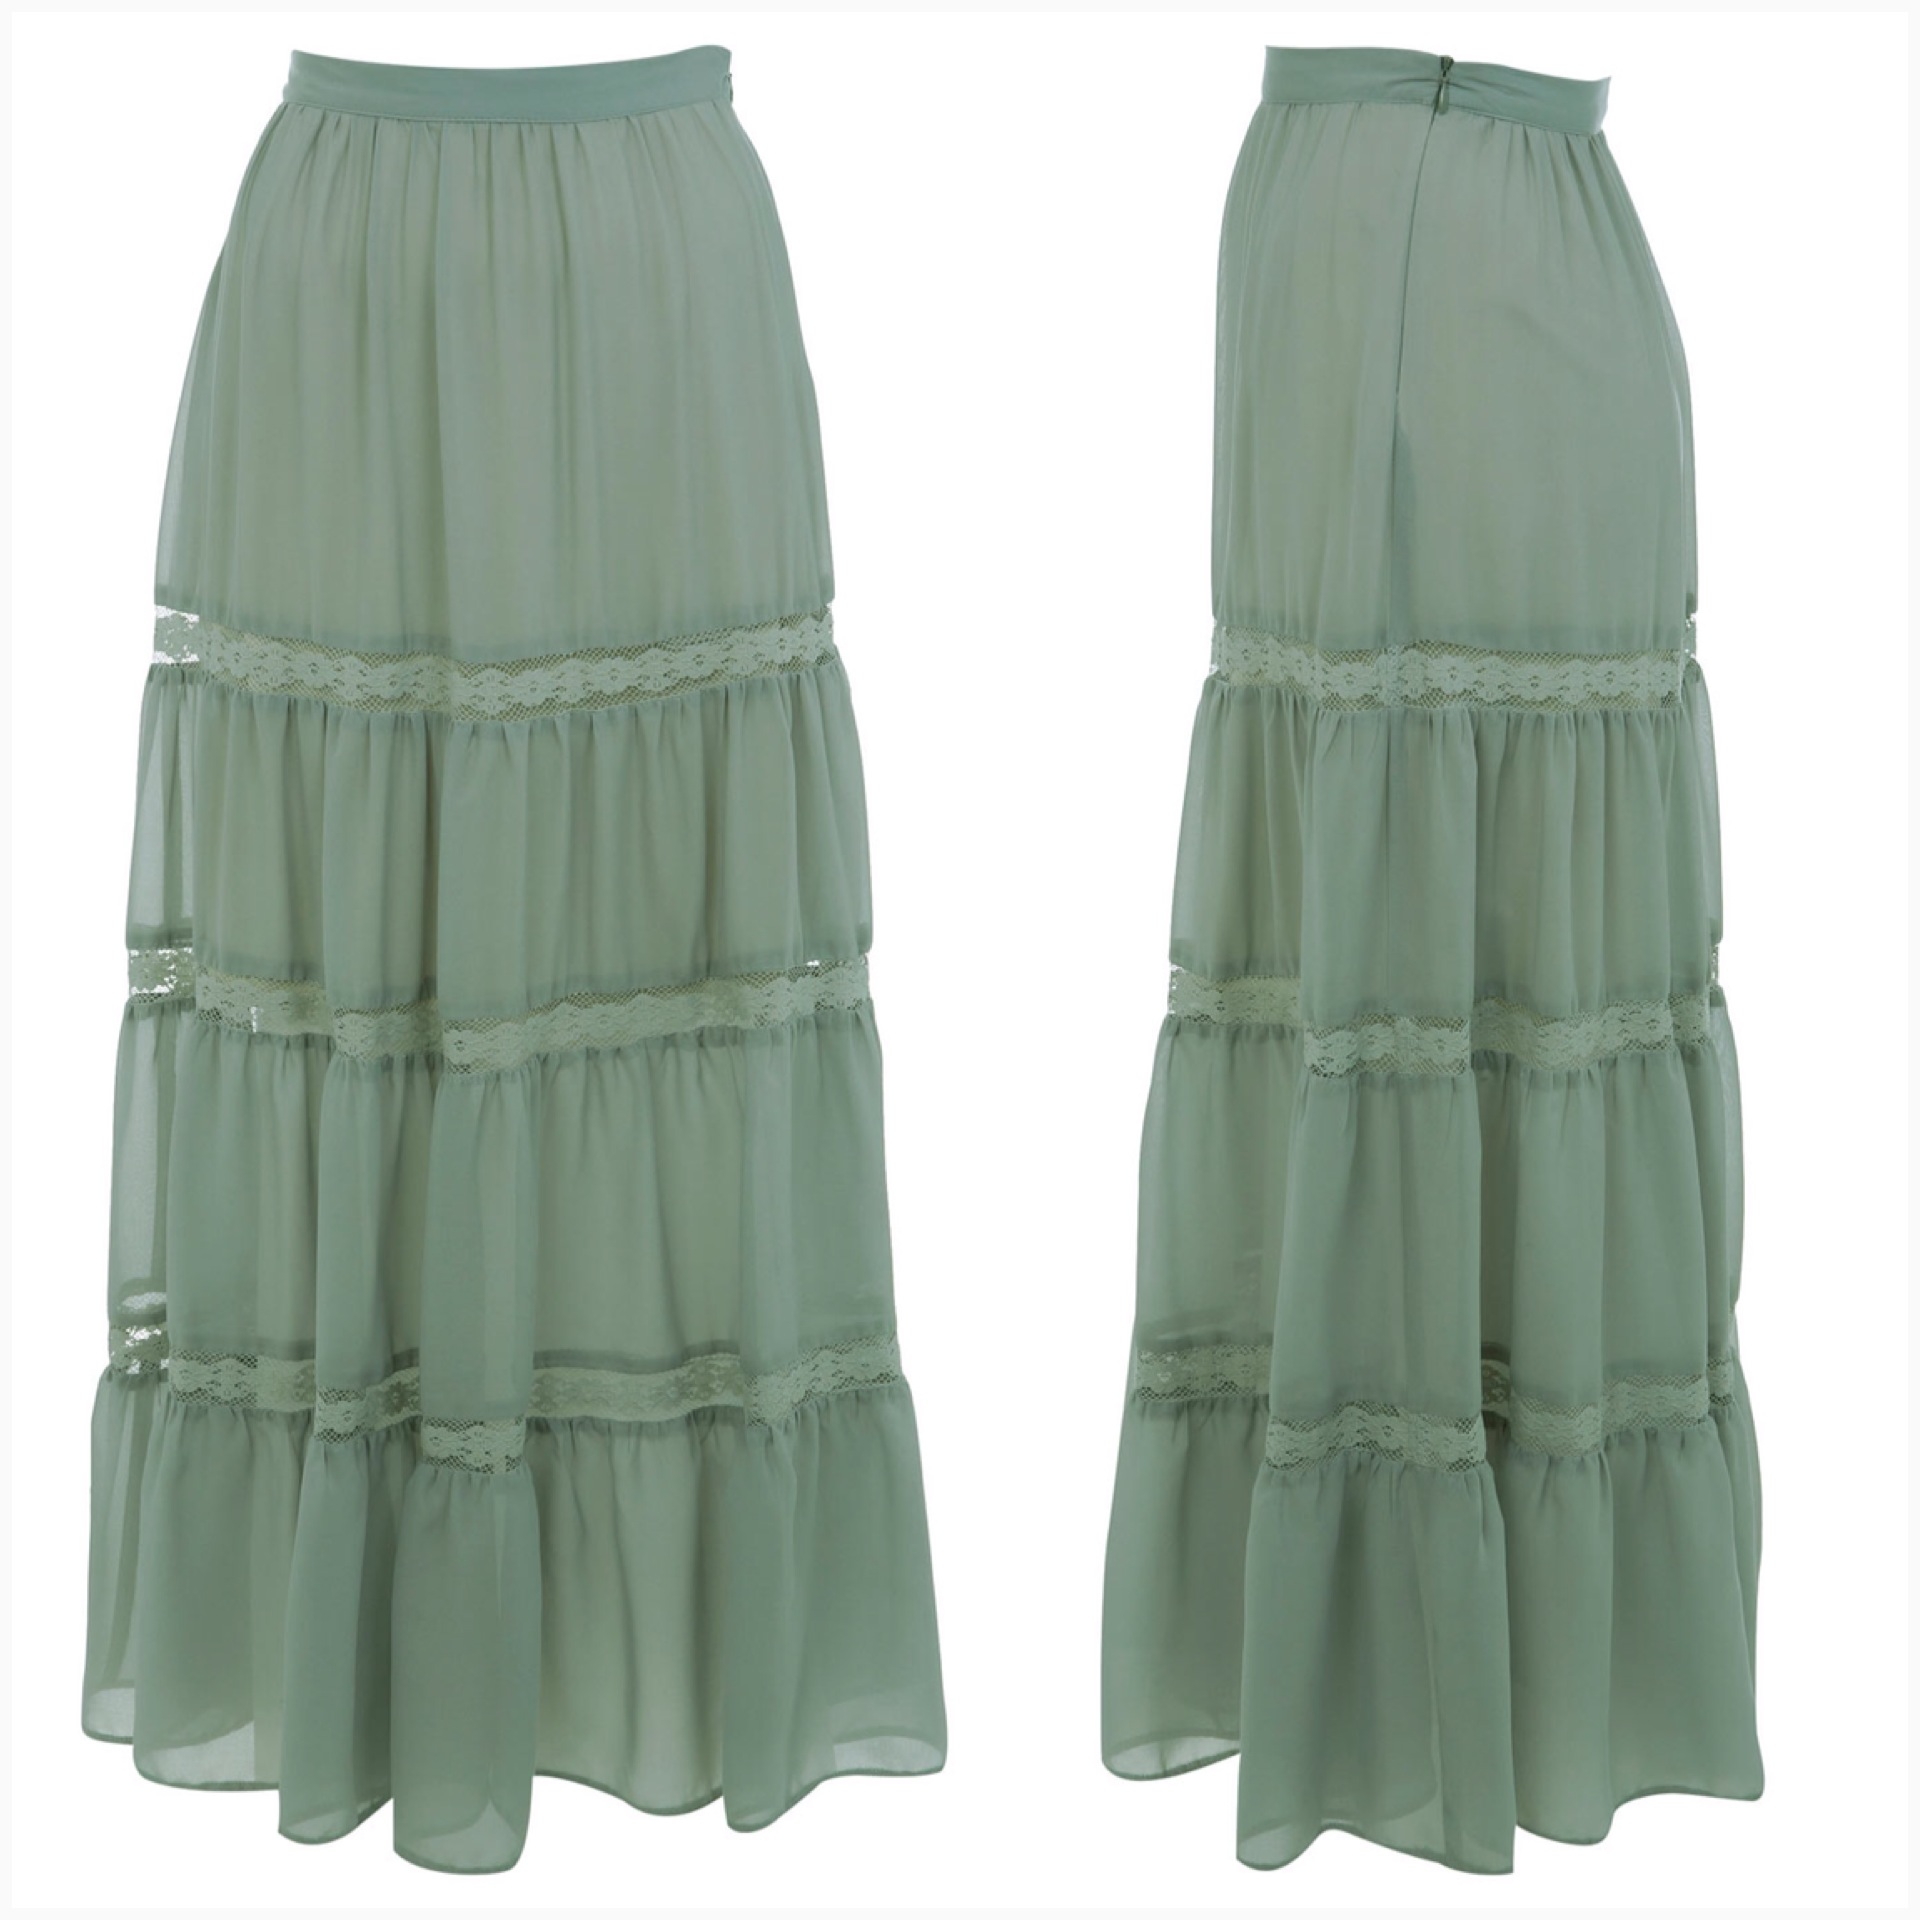 Miss selffridge Skirt Size uk6